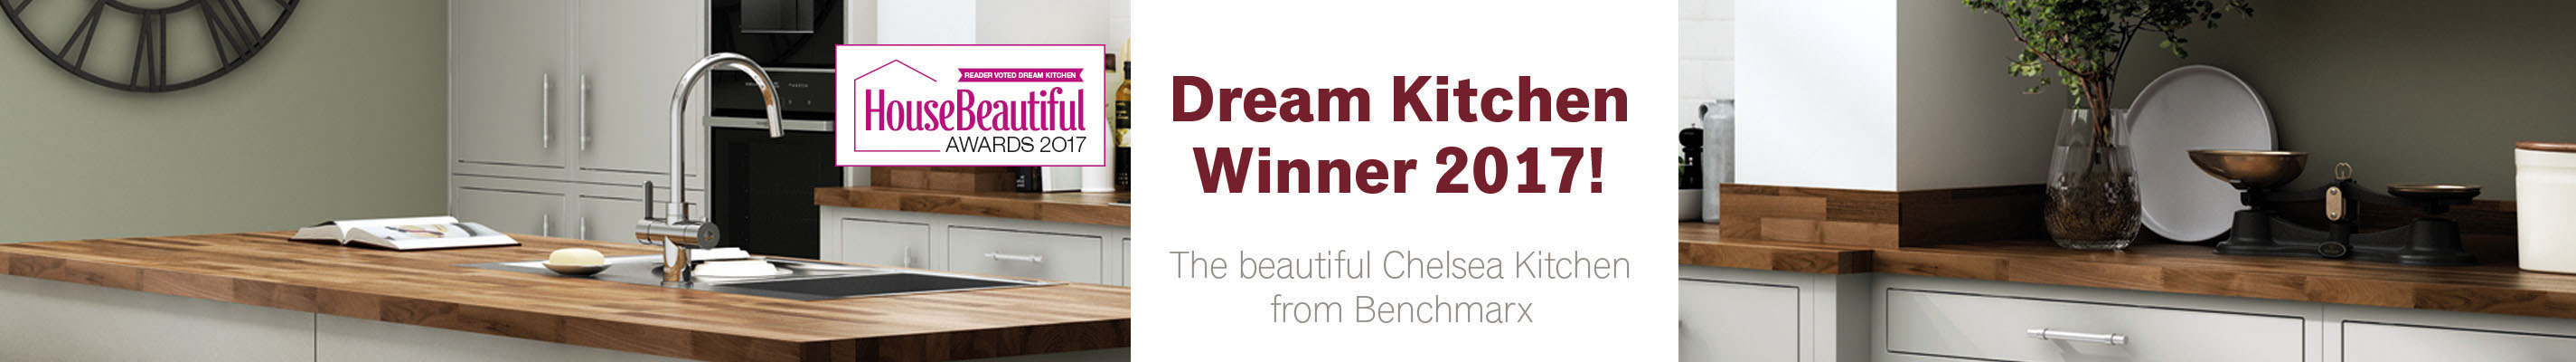 Dream Kitchen Winner 2017! Find out more